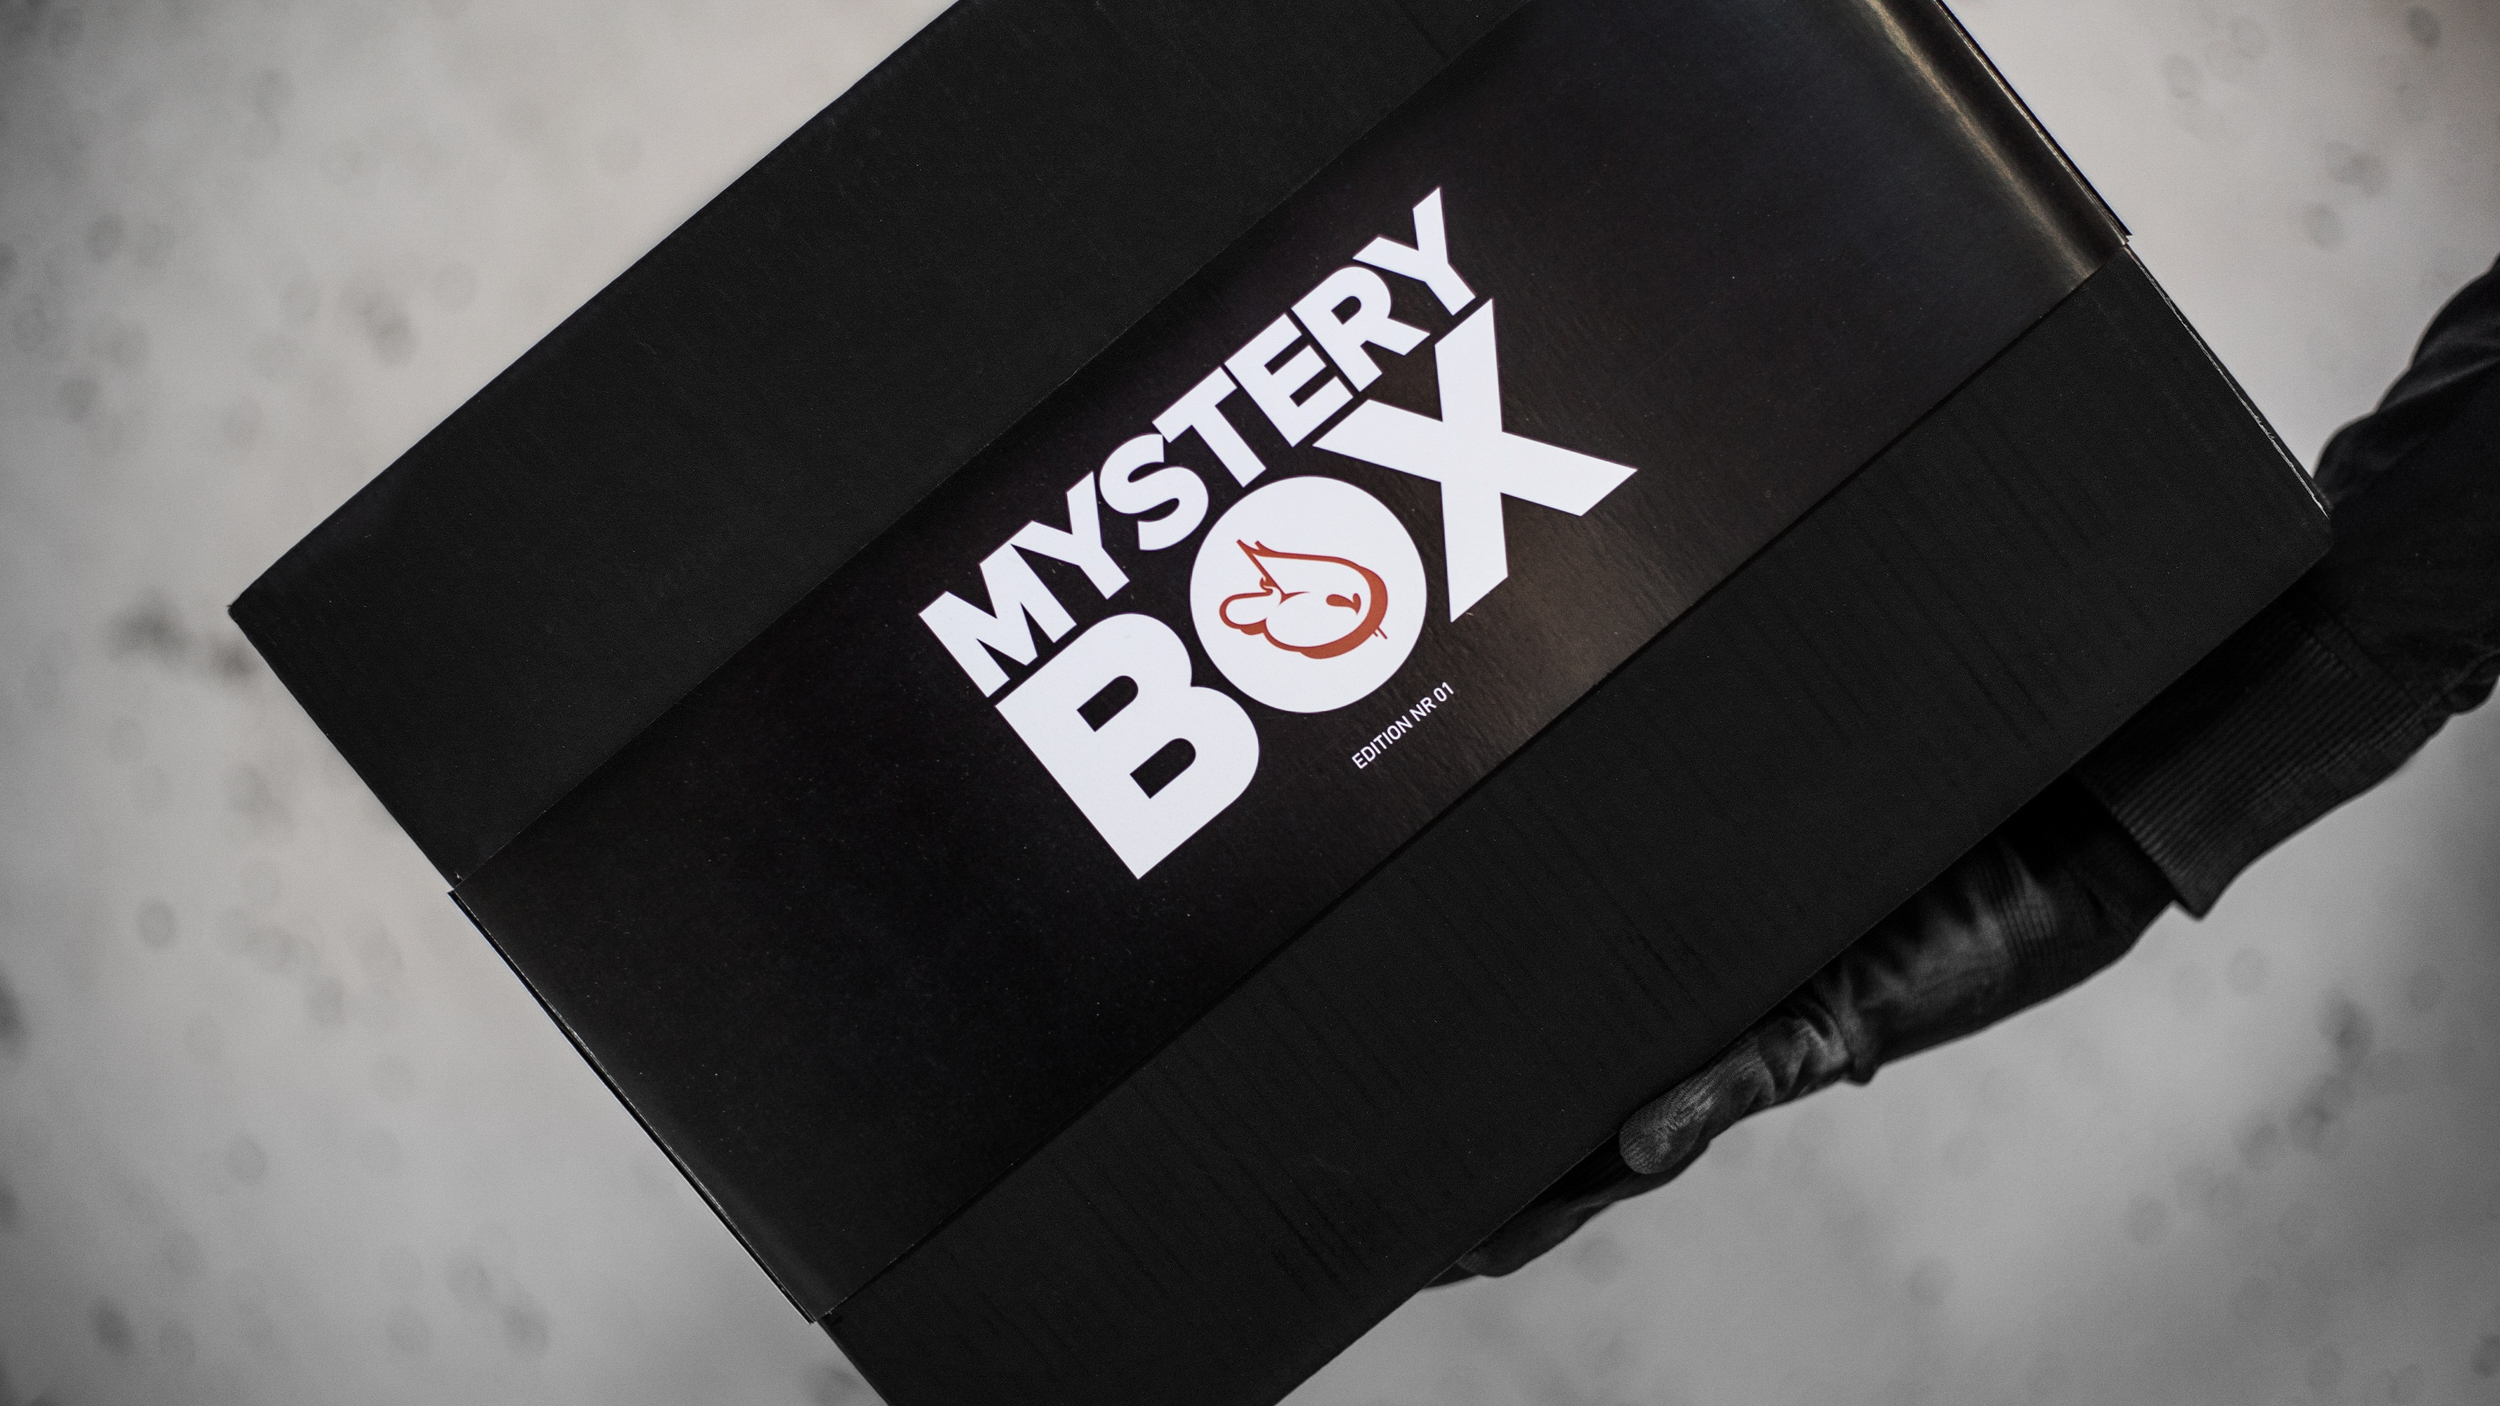 A work by Does - Mystery box edition number one 3